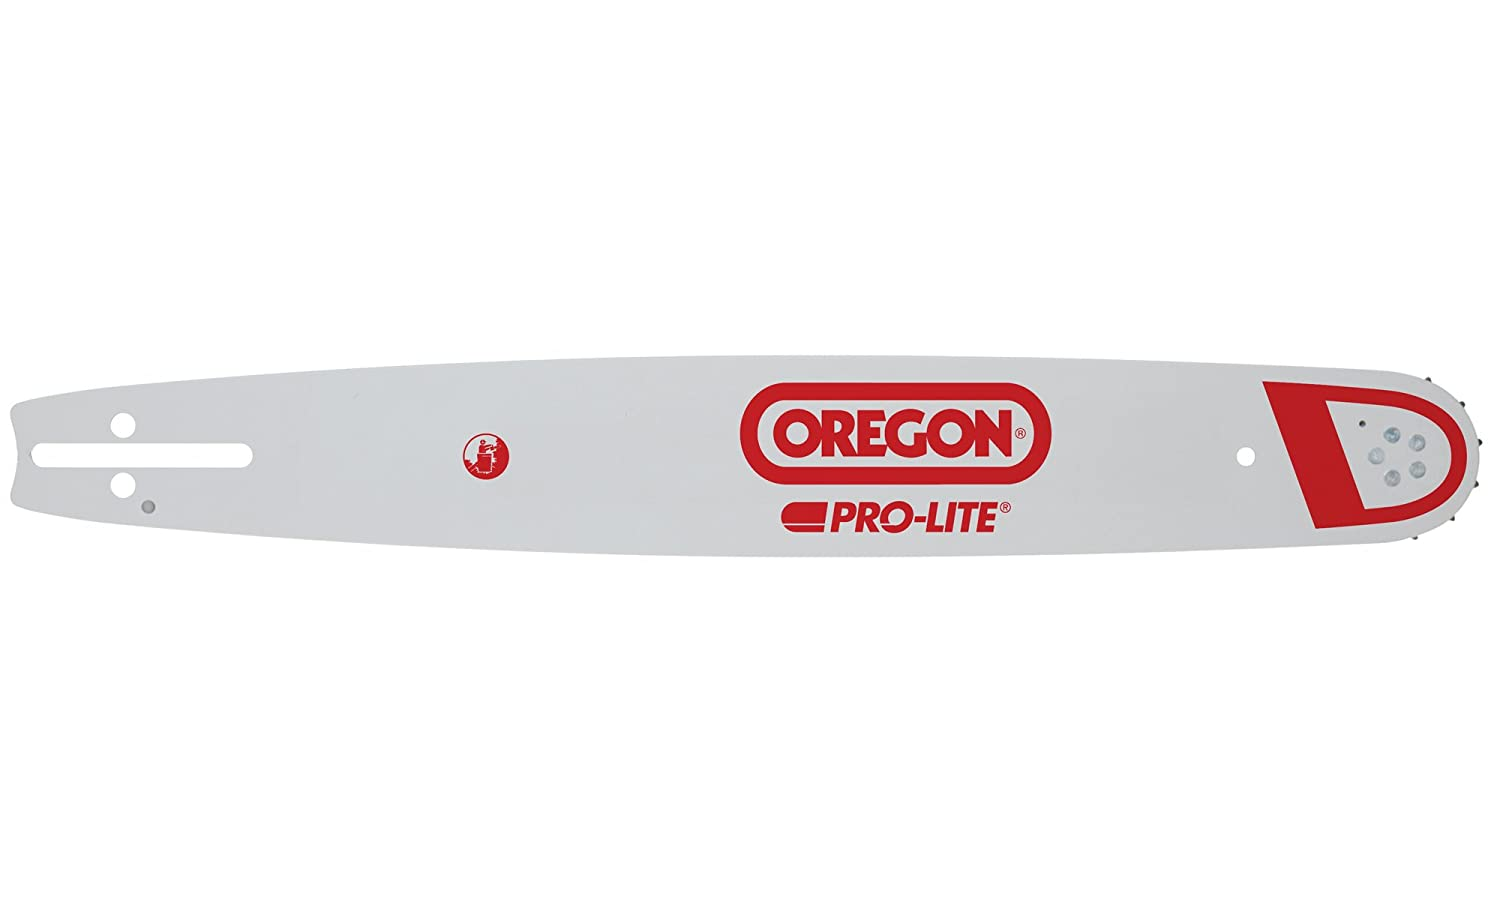 Oregon 188SLBK095 .058 Gauge .325 Pitch 18 Pro-Lite Bar